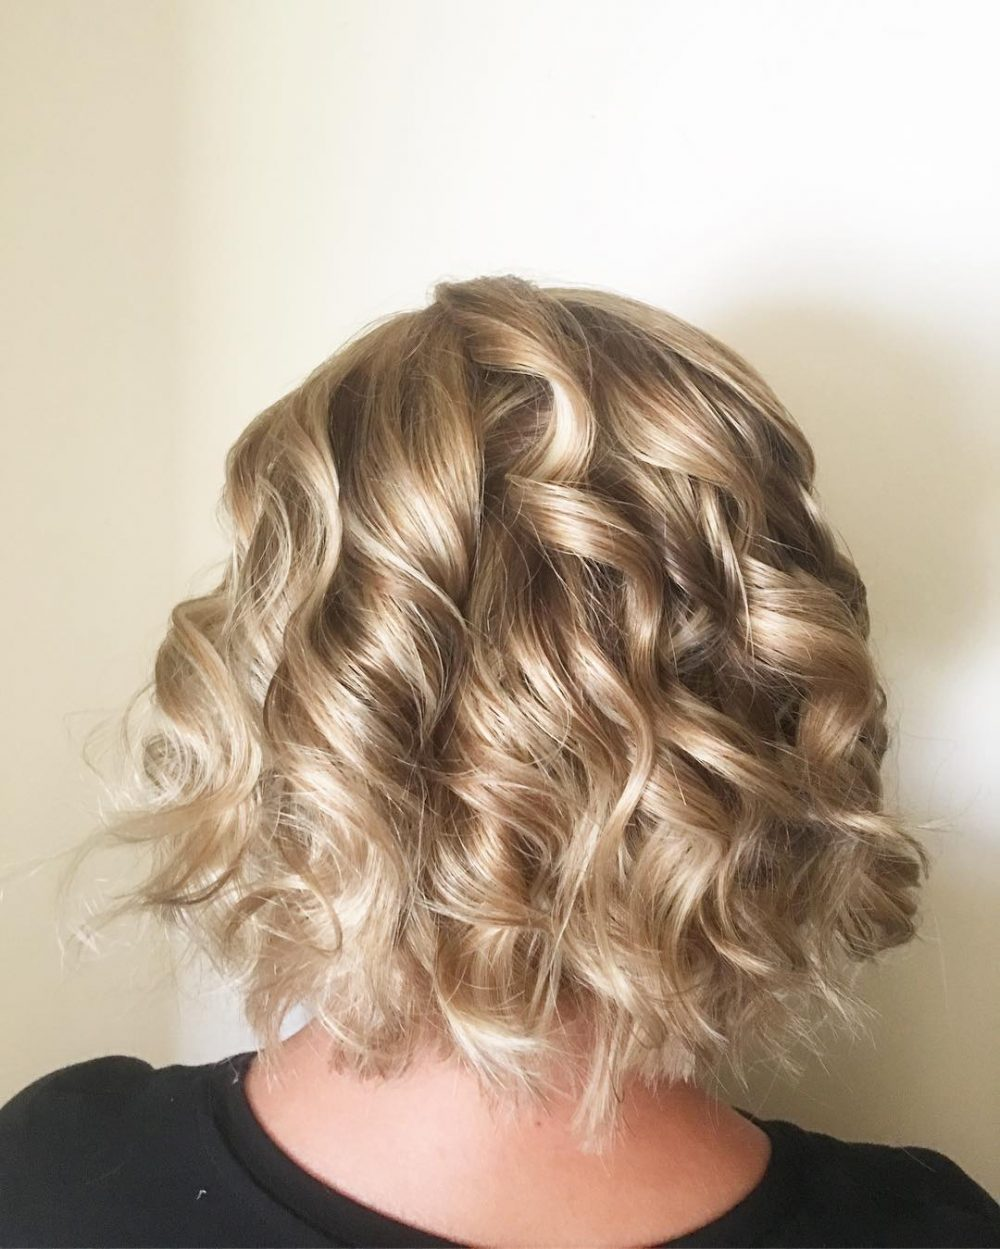 hair curl style 36 curled hairstyles tending in 2018 so grab your hair 2051